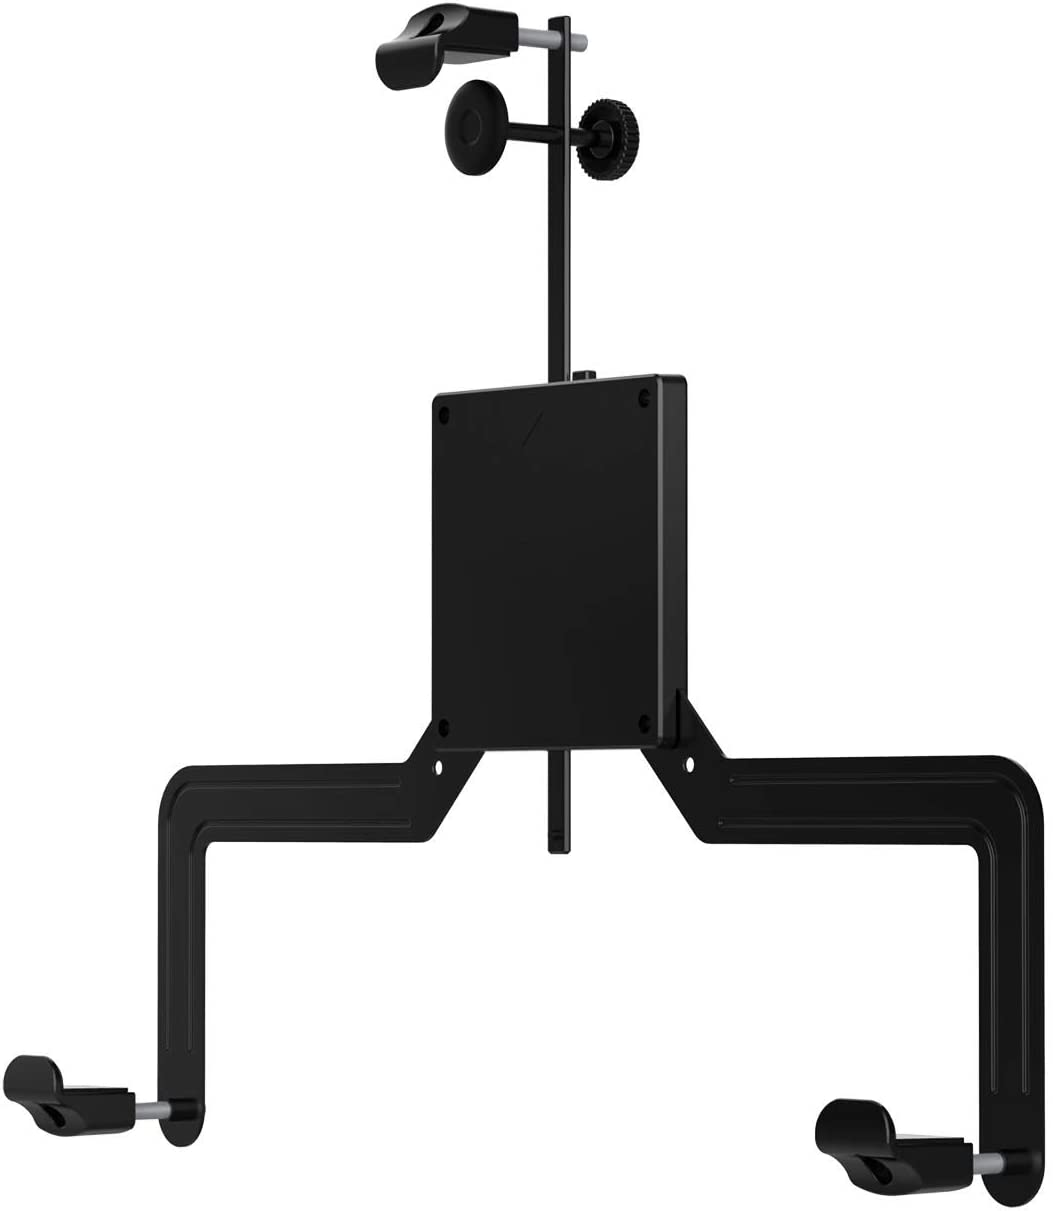 Universal VESA Mount Adapter Kit Convert with Support Rod, Multi-Assemble Type Bracket for Non VESA Monitor Arm Mounting Screens, Fit 17-27 Inch Screen VESA 100x100, Fast and Quick Installation